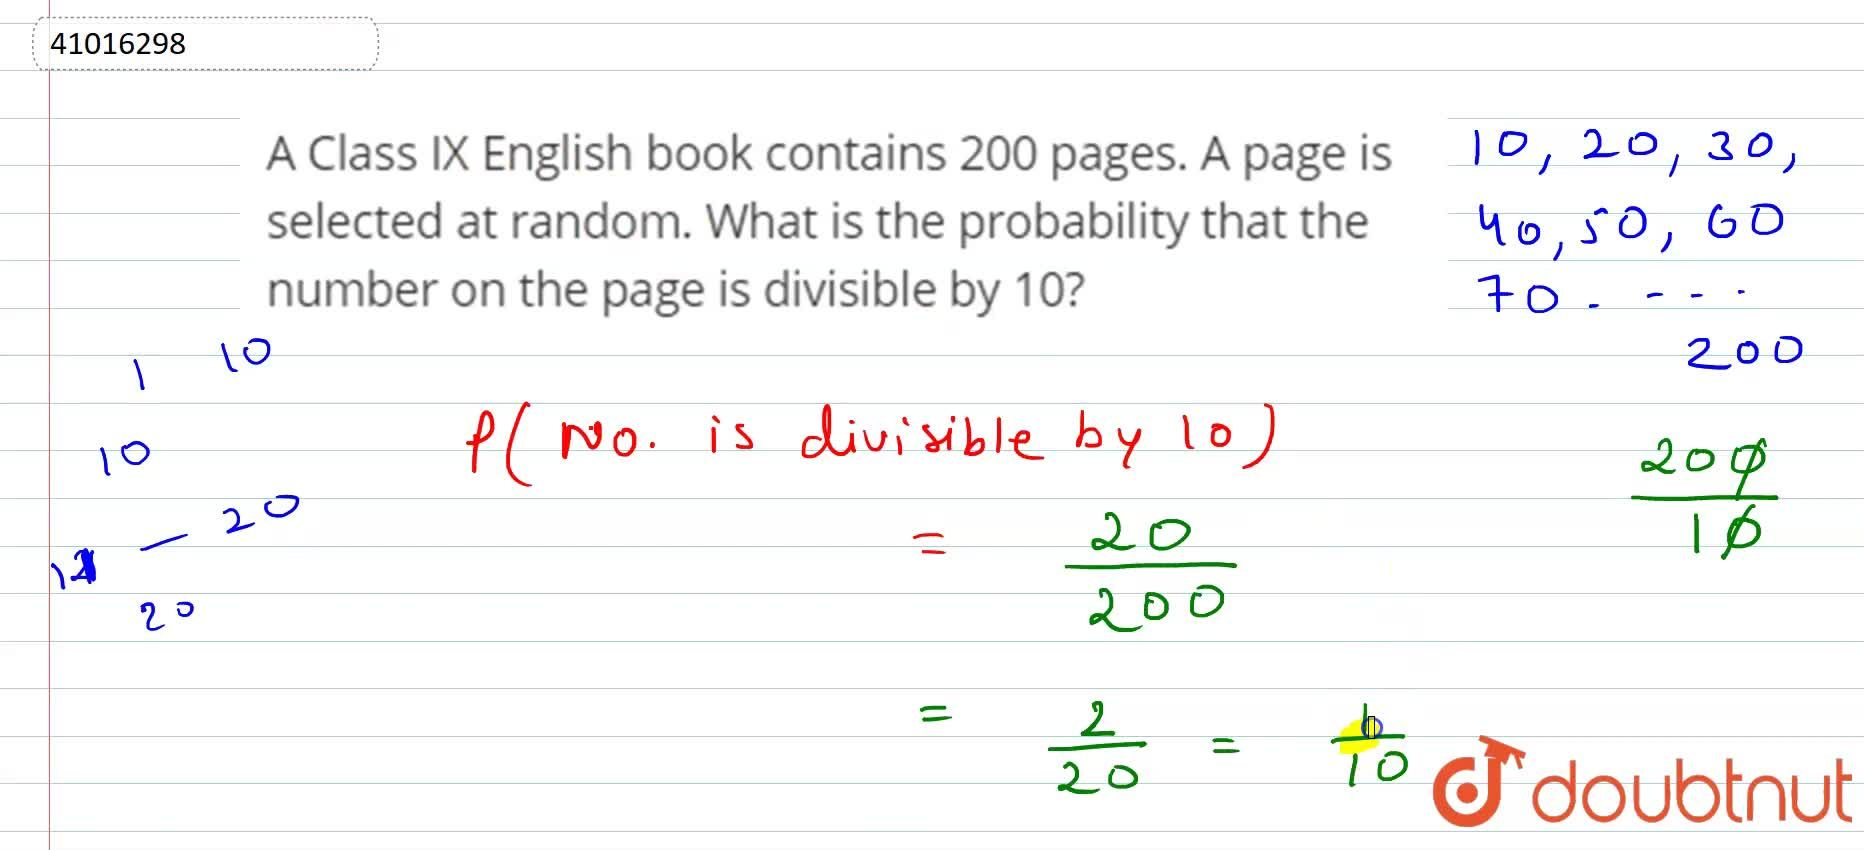 Solution for A Class IX English book contains 200 pages. A page